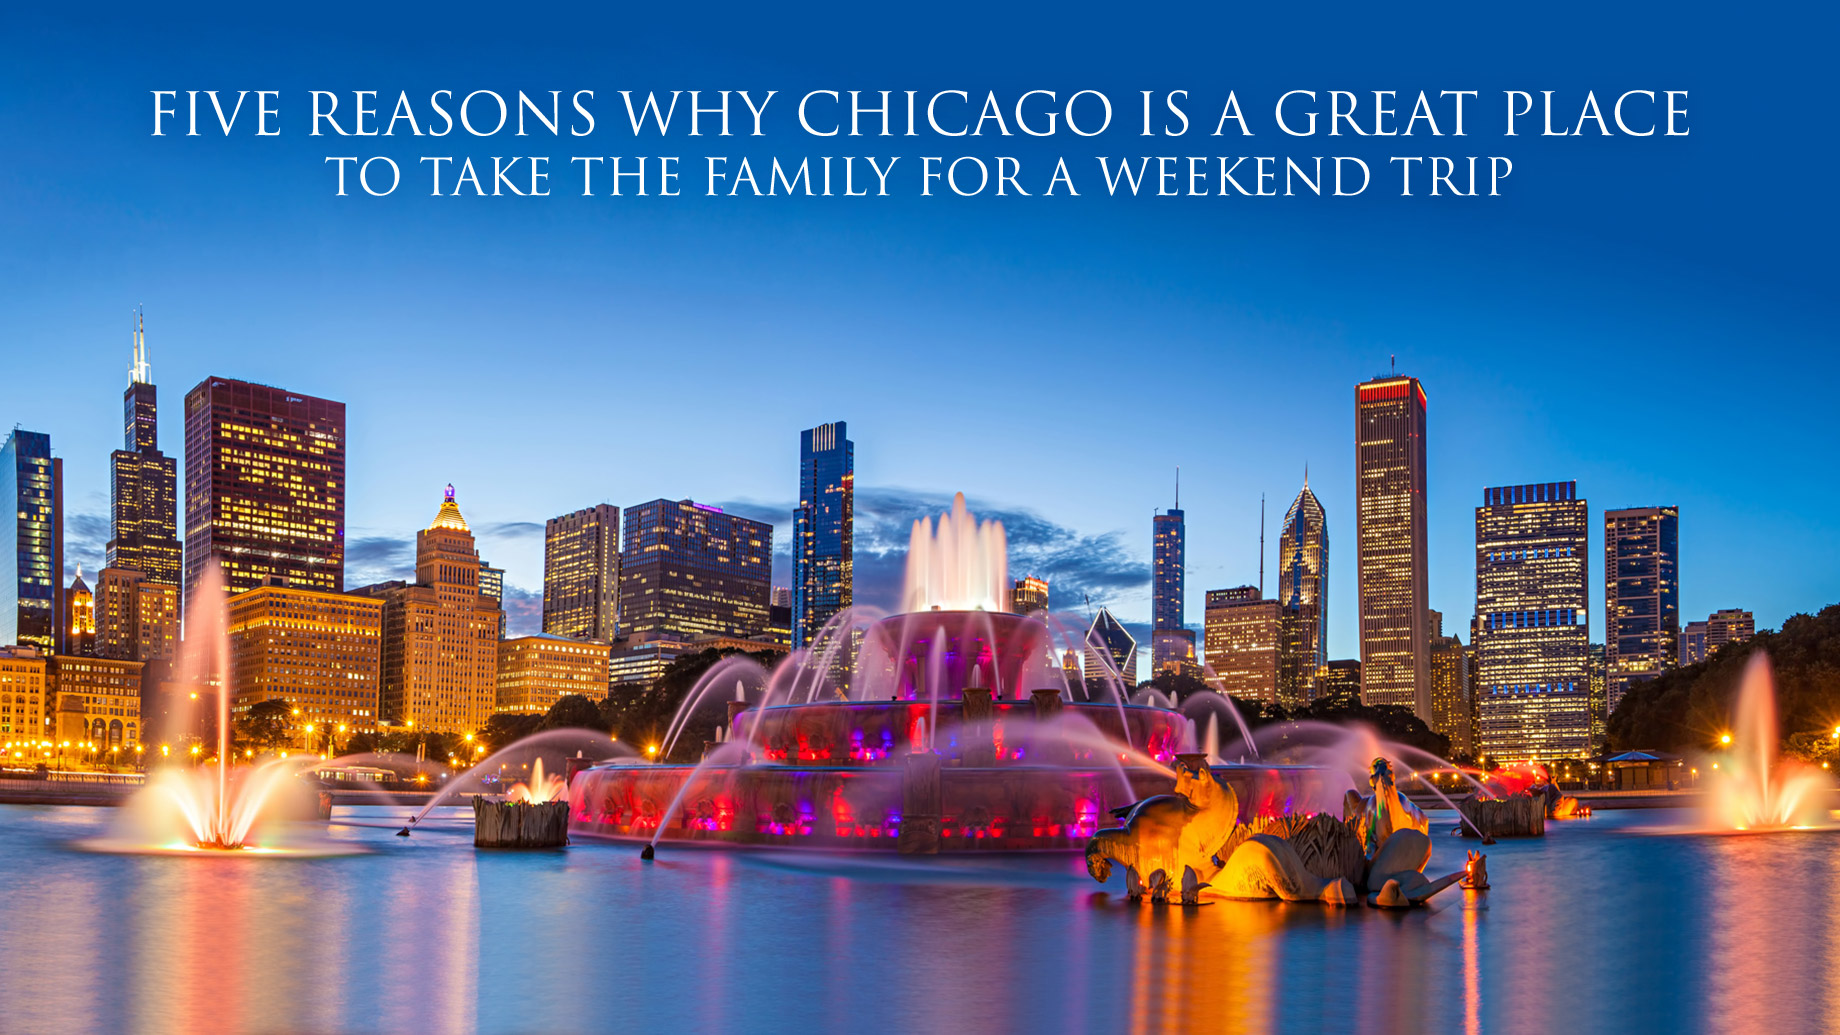 Five Reasons Why Chicago is a Great Place to Take the Family for a Weekend Trip